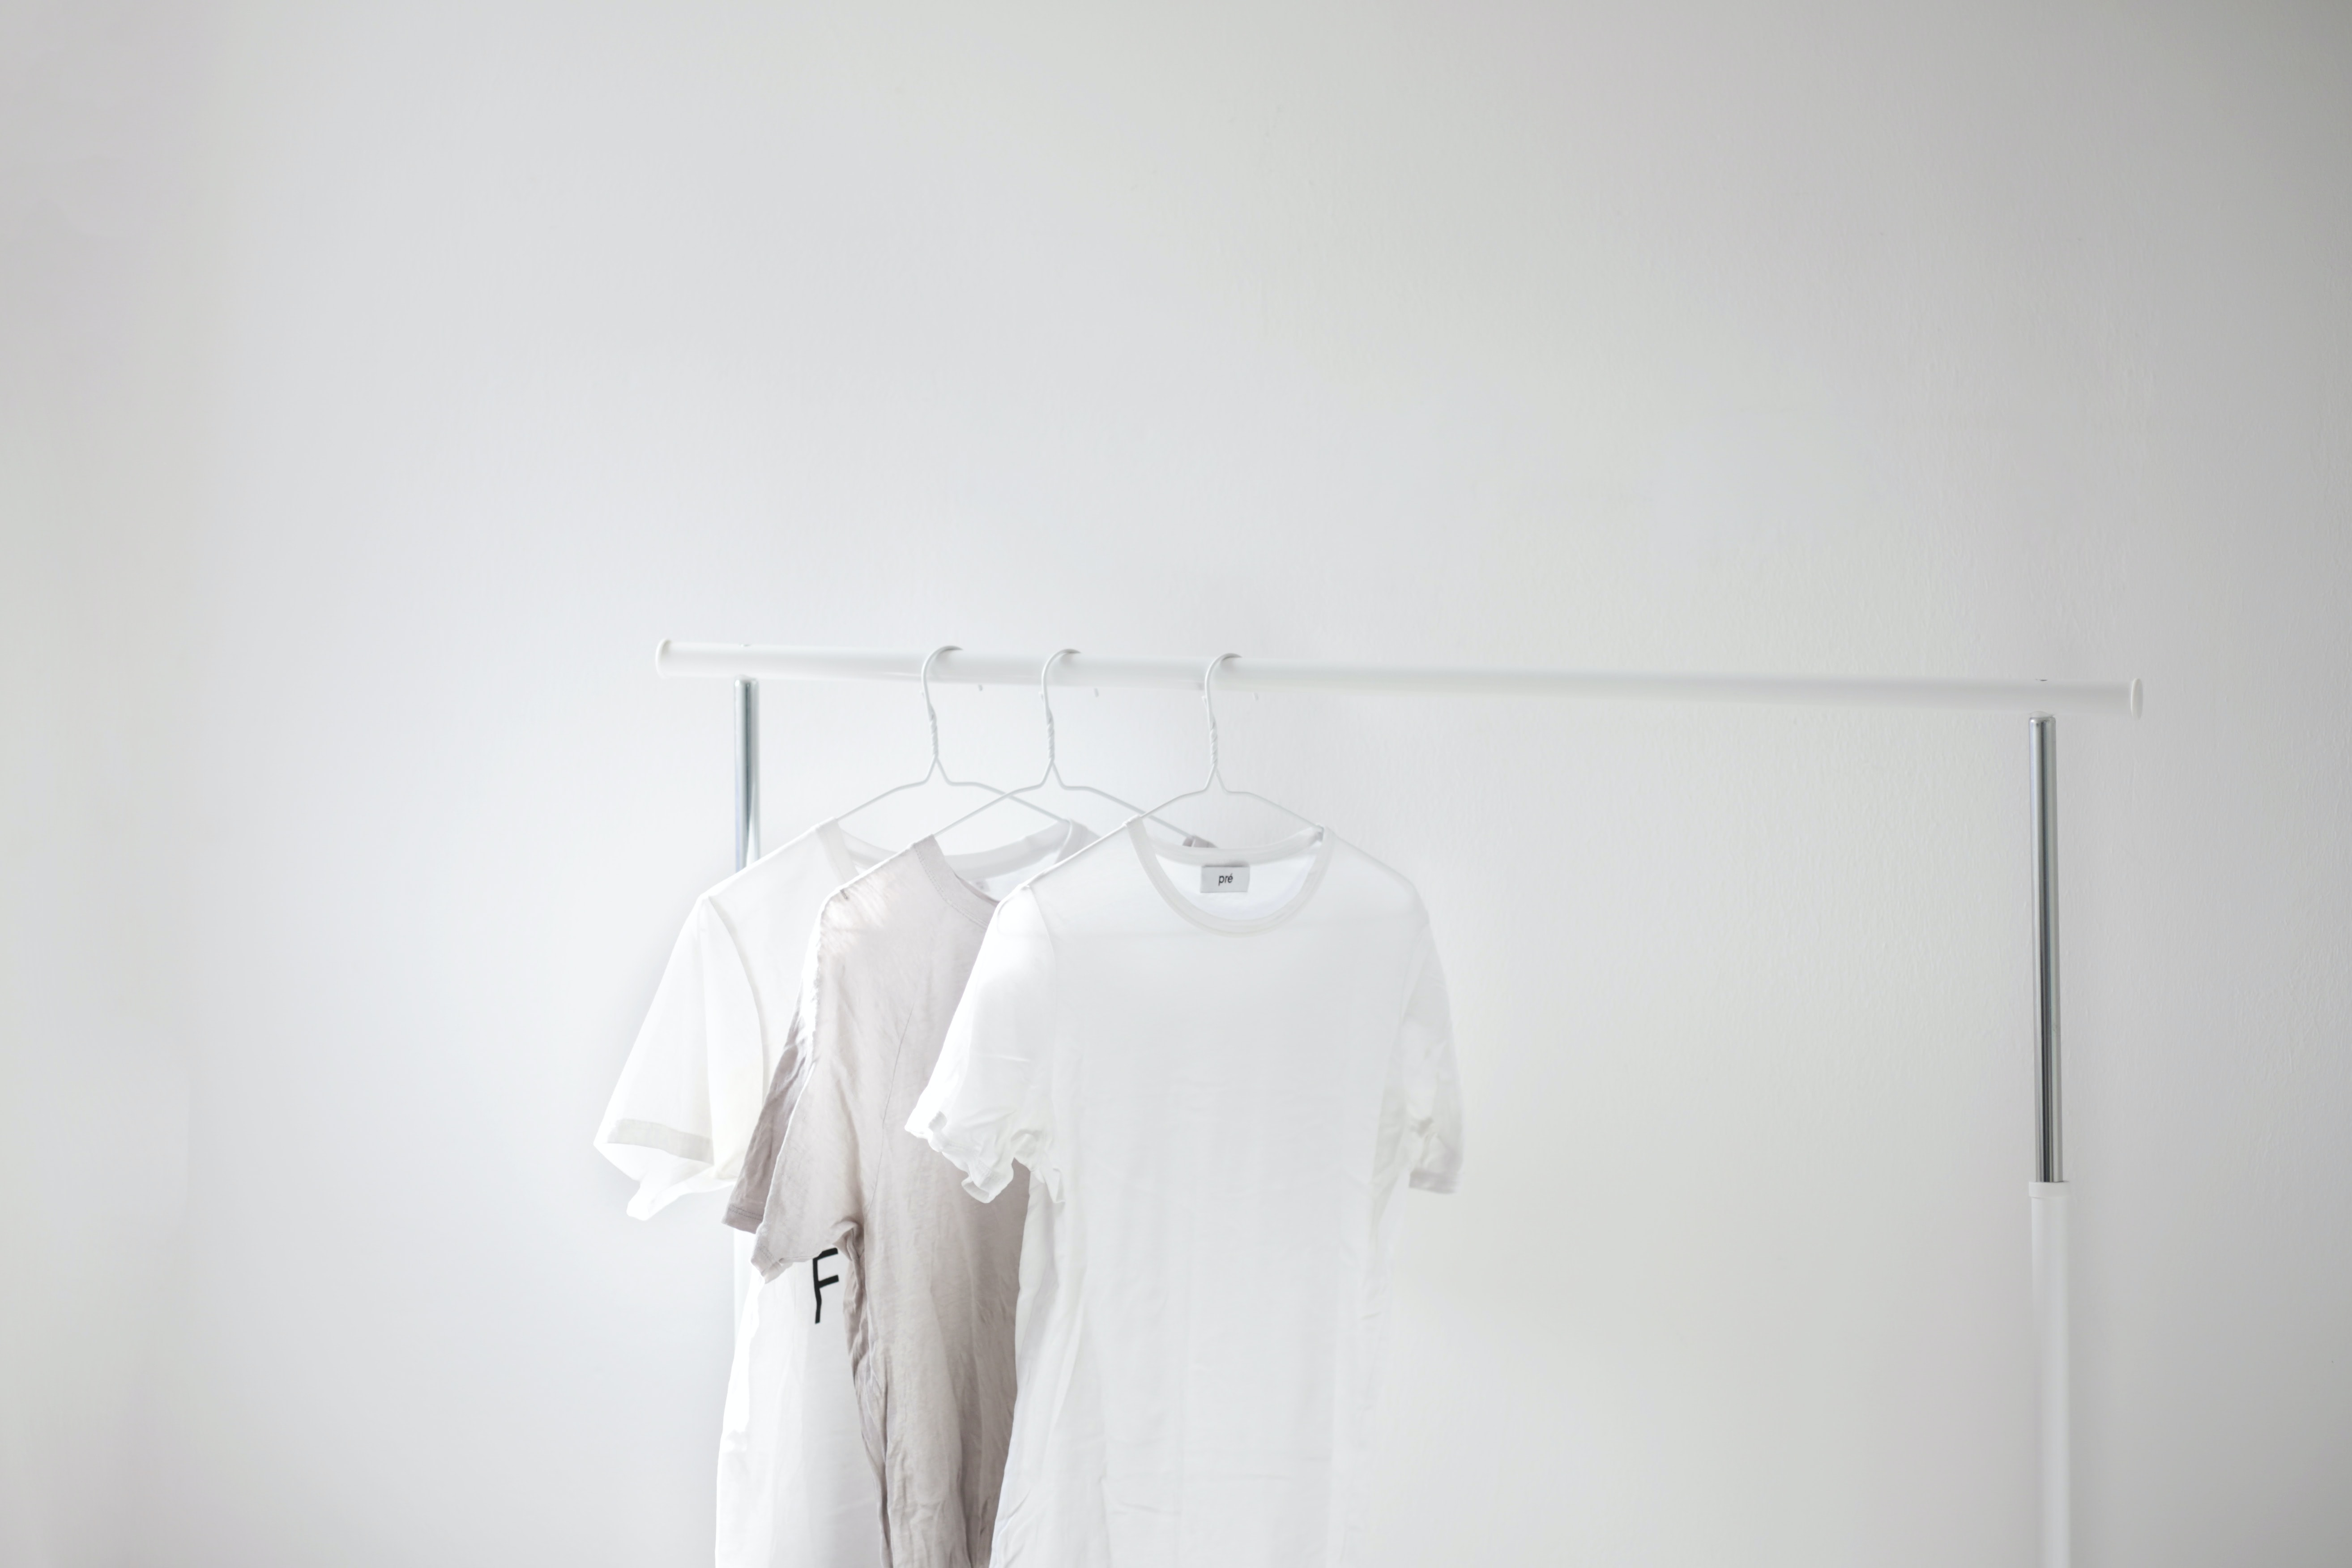 three gray and white crew-neck t-shirts on cloth drying rack